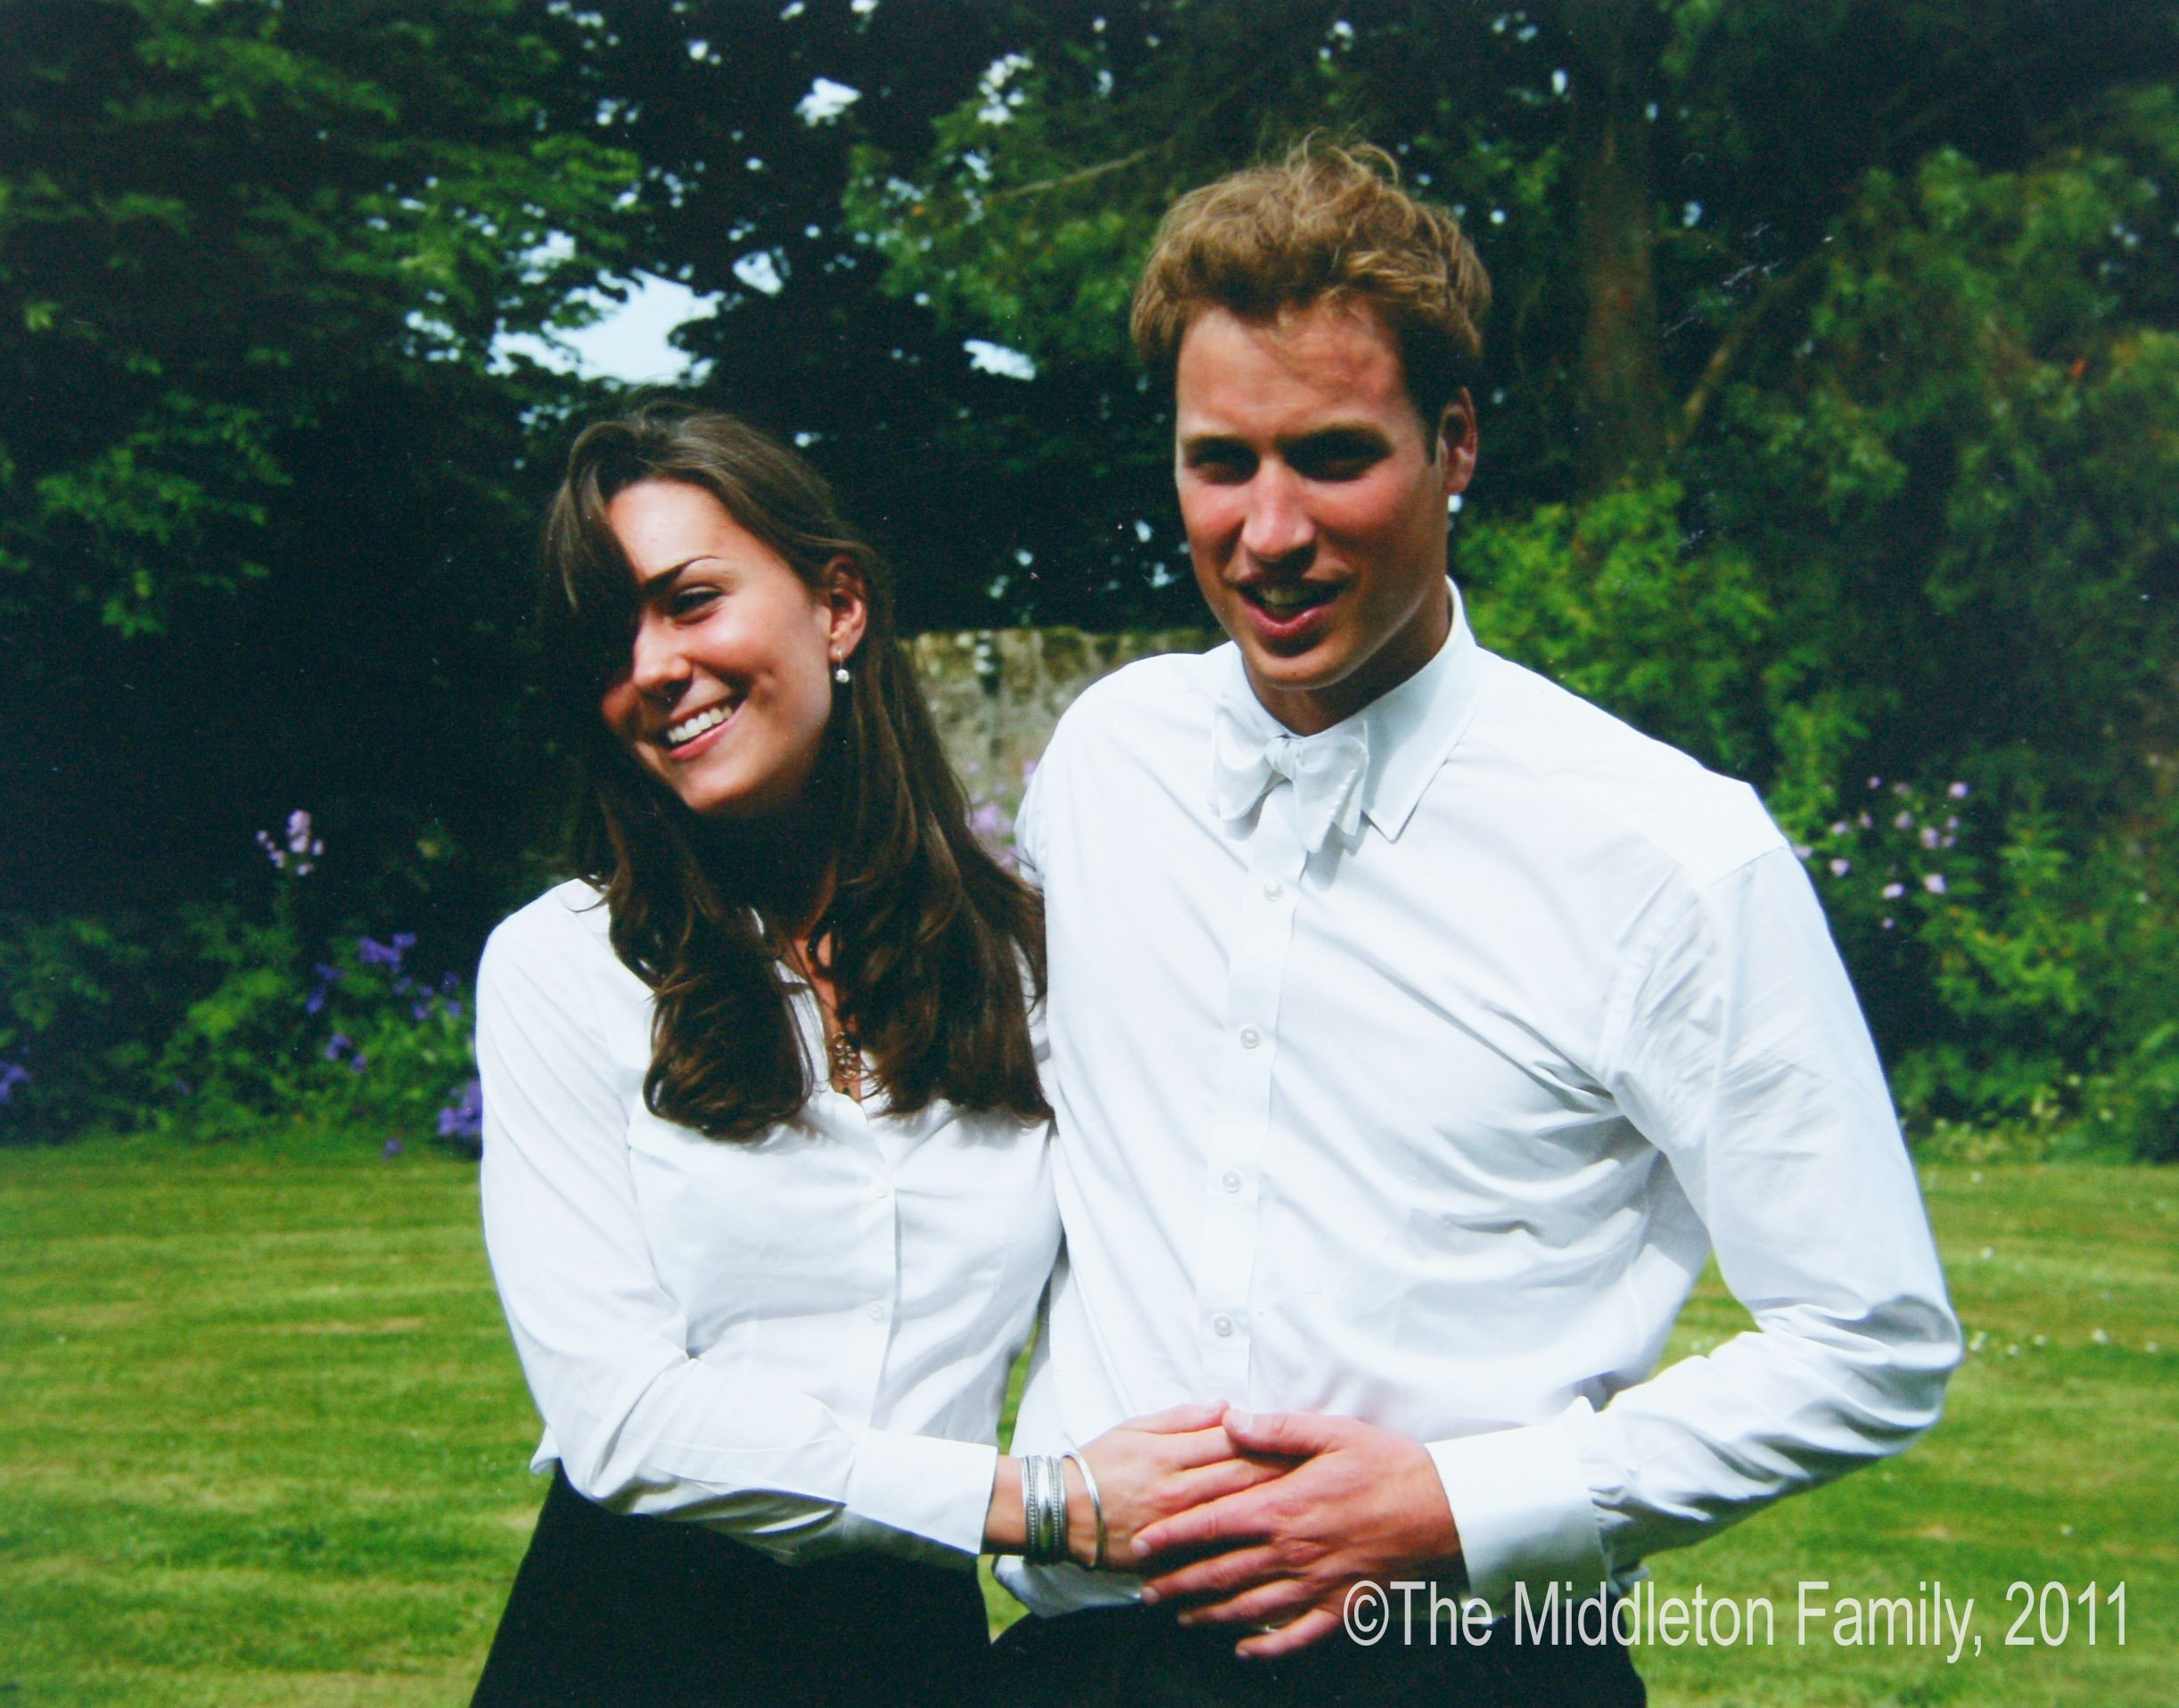 Prince William and Catherine Middleton at St Andrew's University in St Andrew's on June 23, 2005 in Scotland | Photo: Getty Images